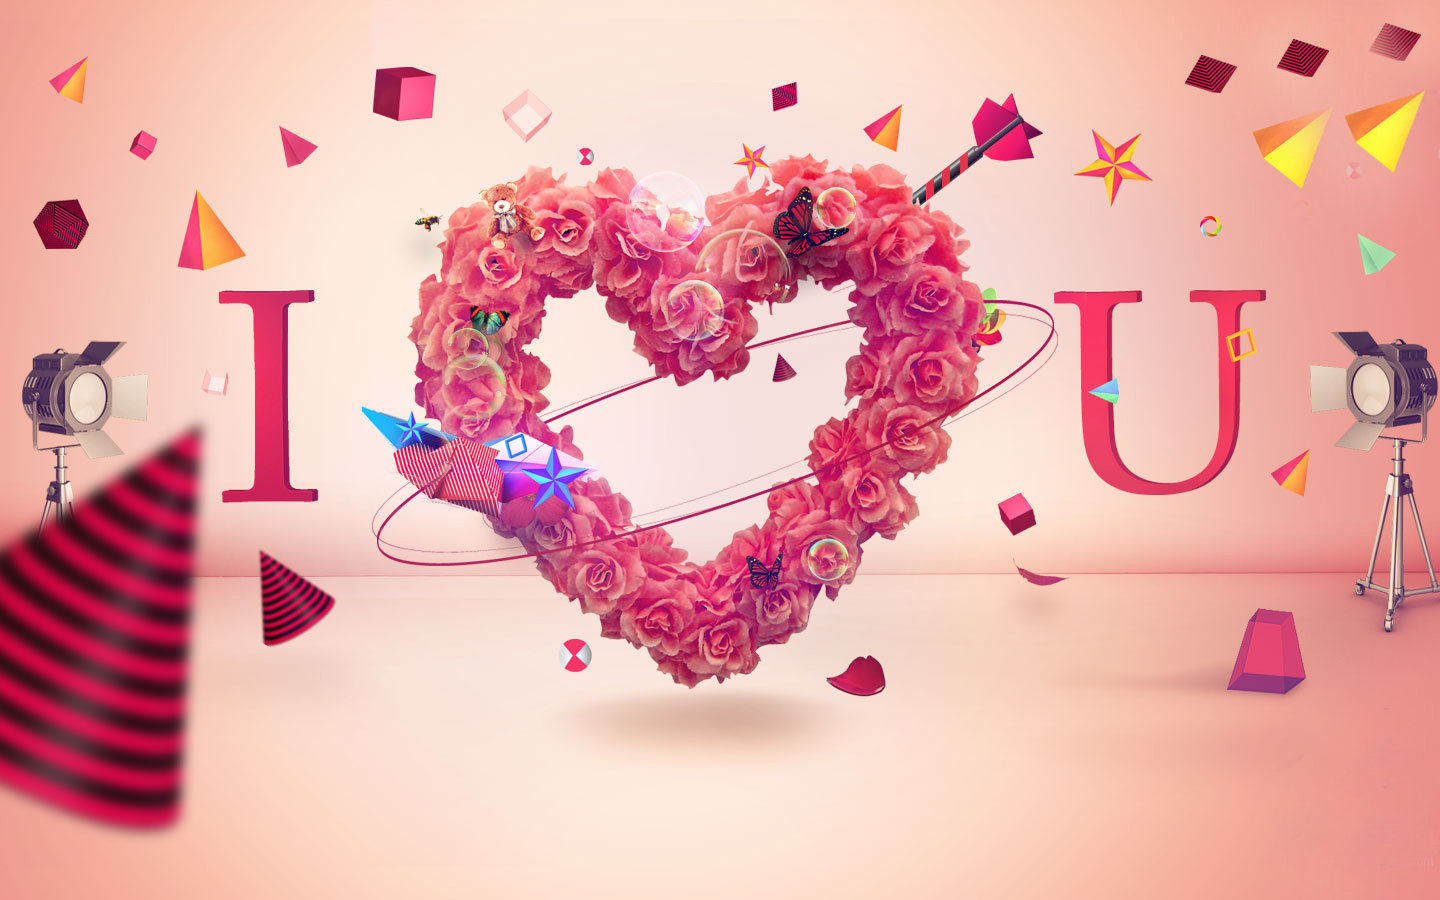 Wallpaper download love hd - You Wallpapers Love 3d Wallpapers Love 3d Vector Images Love Beautiful